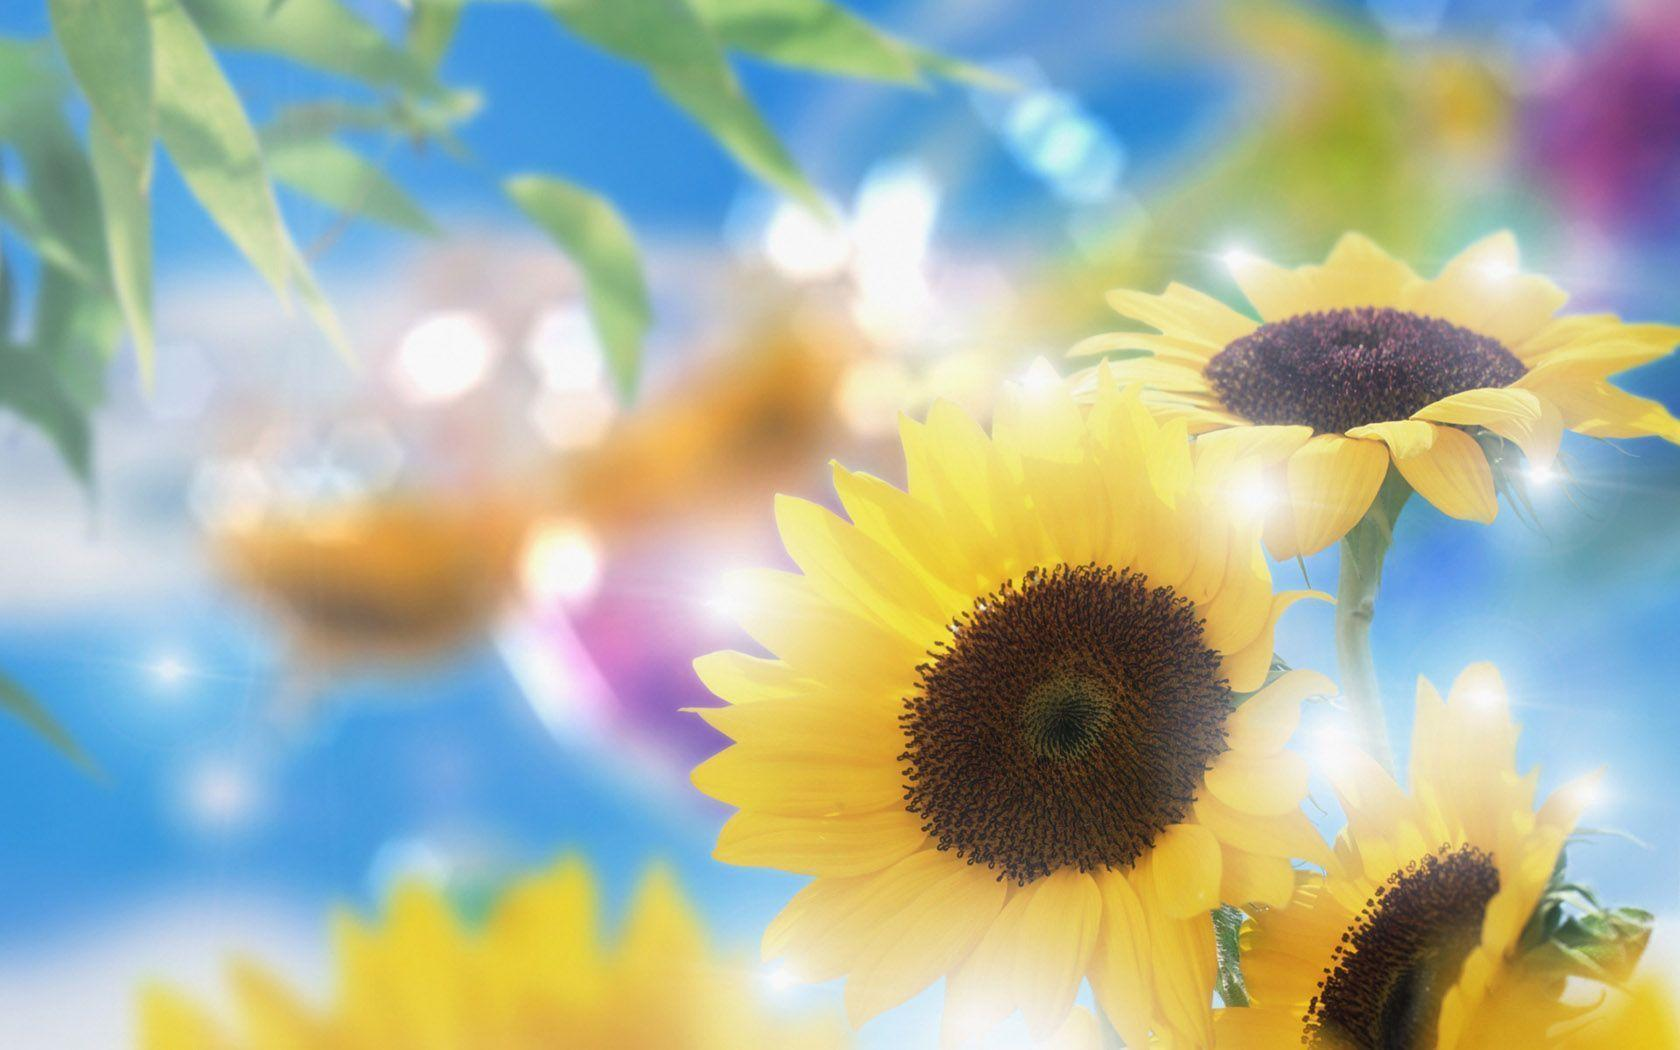 Dreamy Summer Time Sunflowers And Sunlight Wallpapers